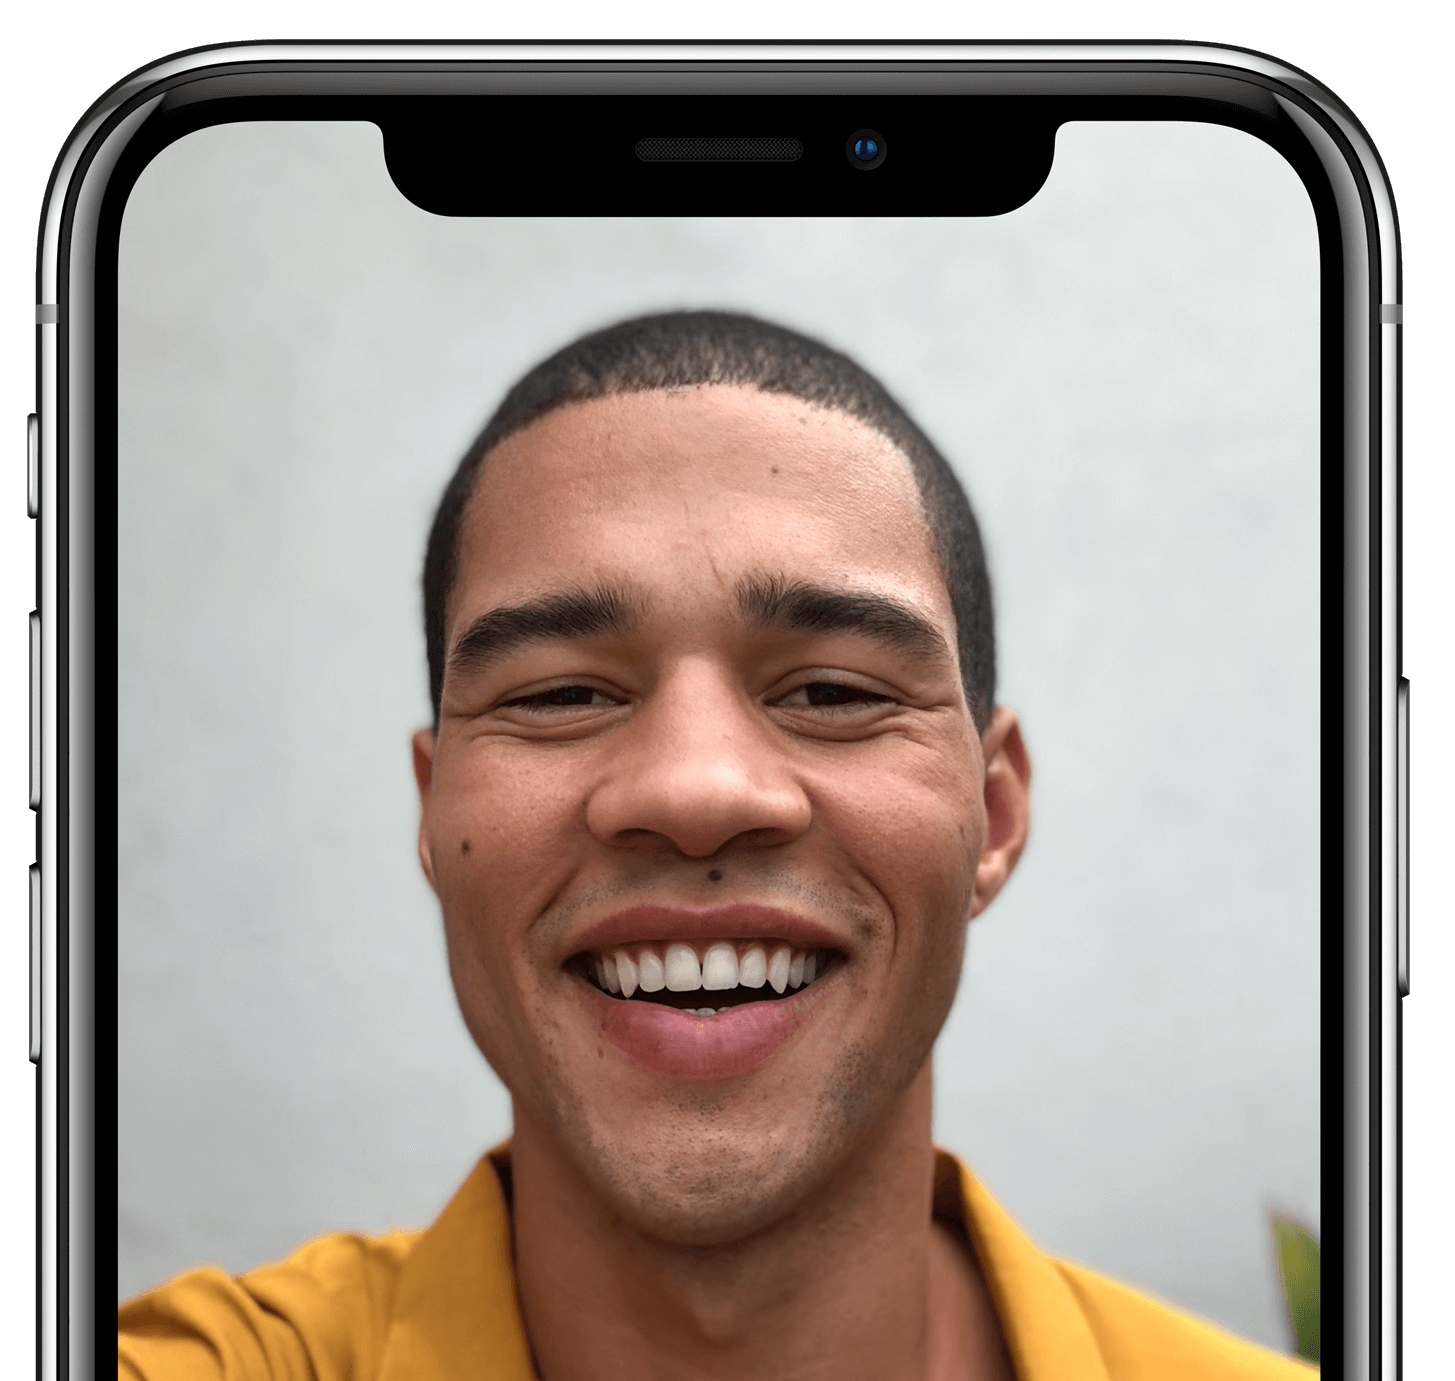 Apple iPhone X features advanced front camera so you can take beautiful selfies. Shop now at The Good Guys.